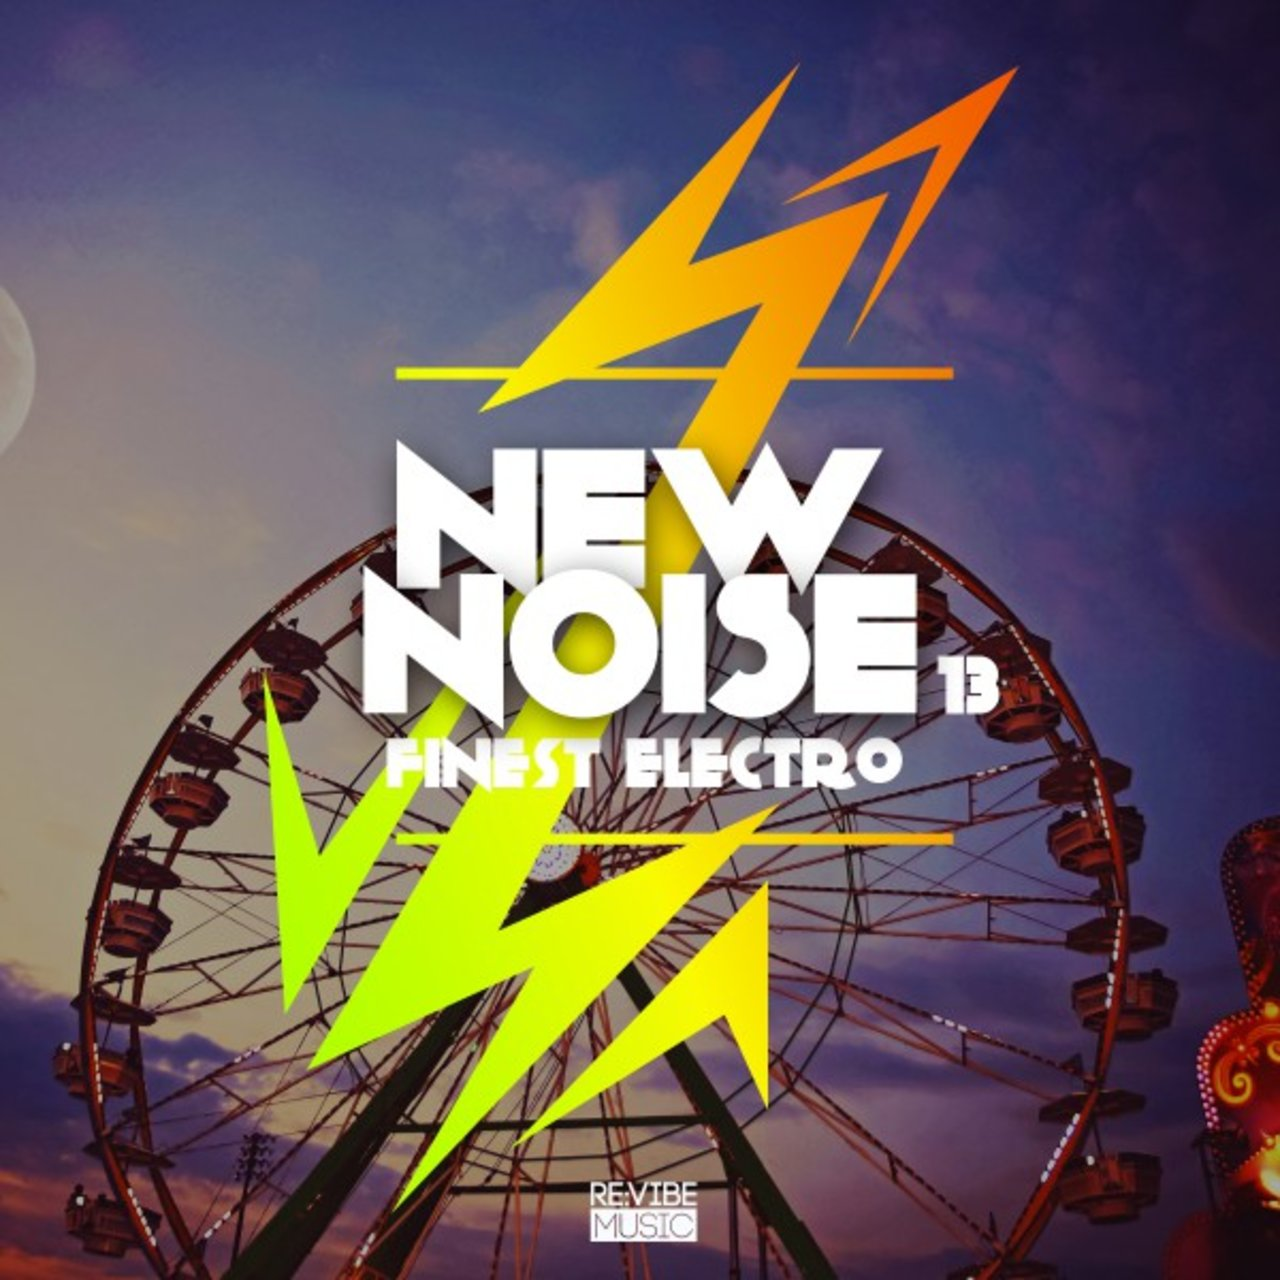 New Noise - Finest Electro, Vol. 13